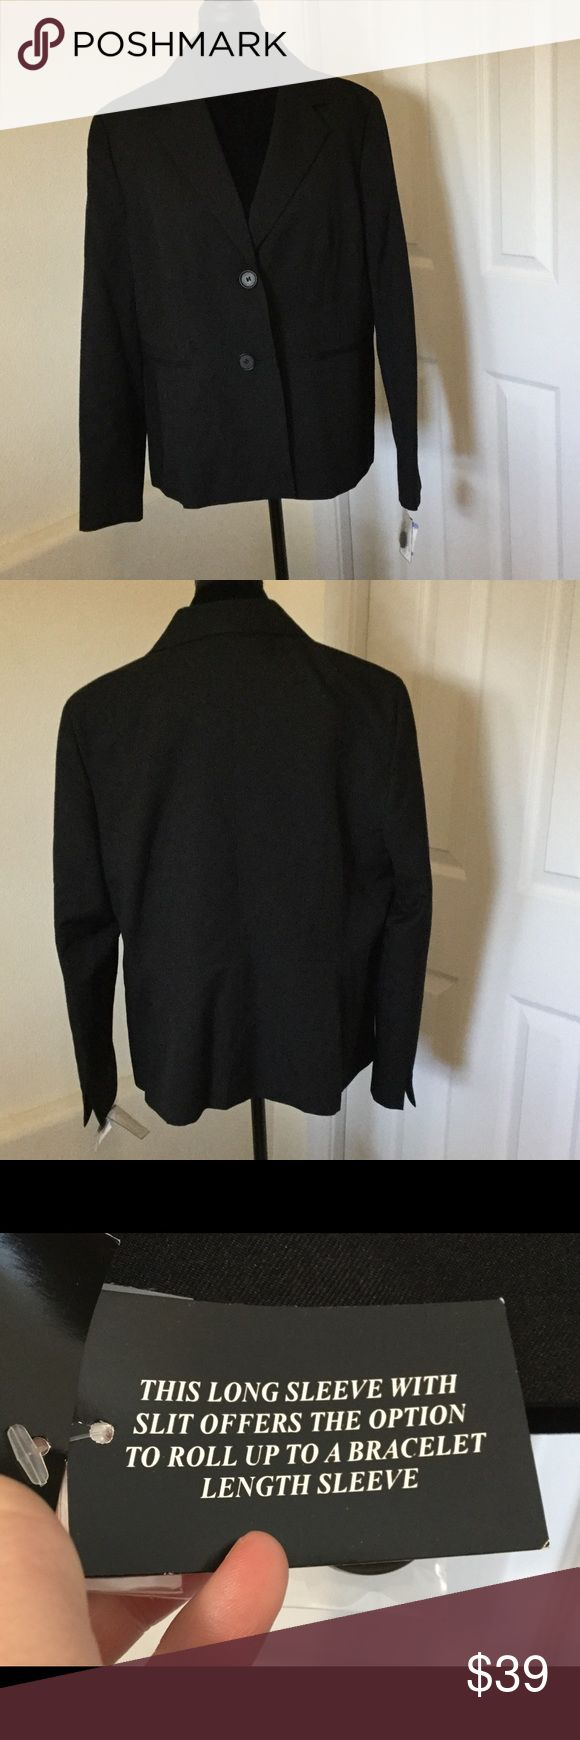 """NWT Plus Size Black Blazer - Has a defect - Read Defect is shown in last photo. Came that way from manufacturer. Faint white lines going down the side of the left arm. Other than that Brand New with tags! Measurements: shoulder to hem is approximately 26"""" and armpit to armpit is 23"""" across. Retail is $119.00 Classy black blazer that every wardrobe needs! Kasper Jackets & Coats Blazers"""